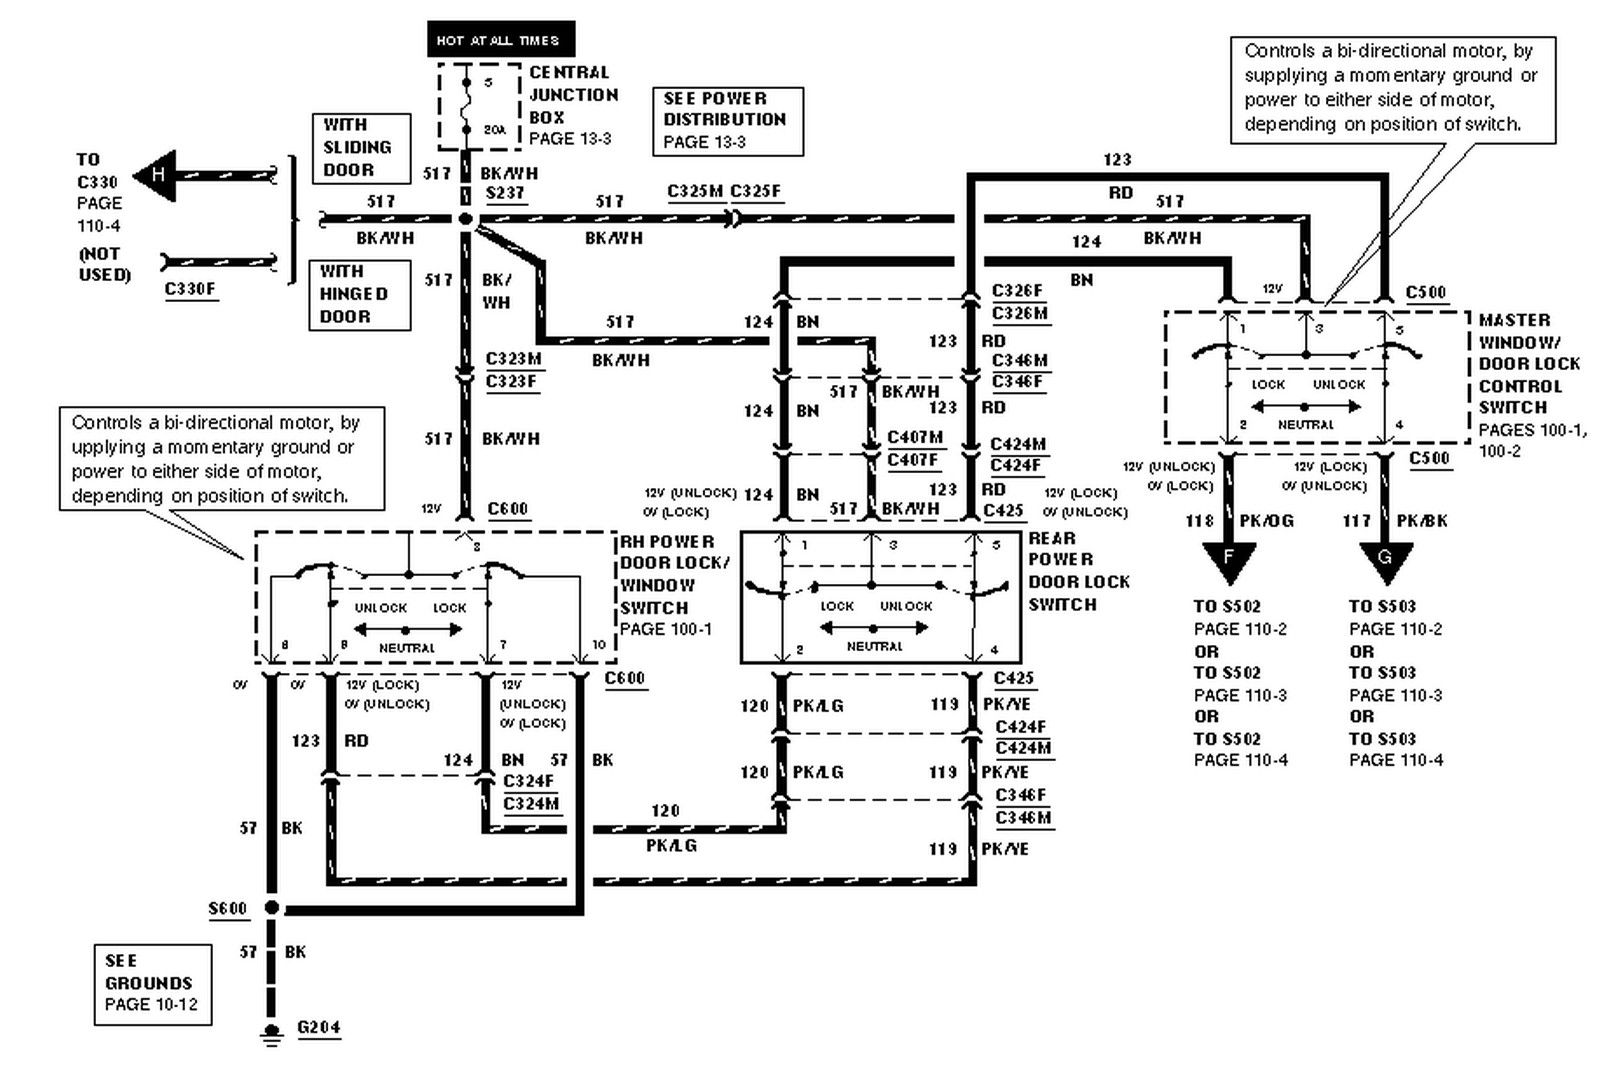 80 2010_11_05_235941_99_e_350_power_door_lock_wiring_diagram_e574233ae37af9677ff5fddb790386a28f9dd7ad factory trailer wiring harness ford truck enthusiasts forums ford f350 wiring harness at soozxer.org